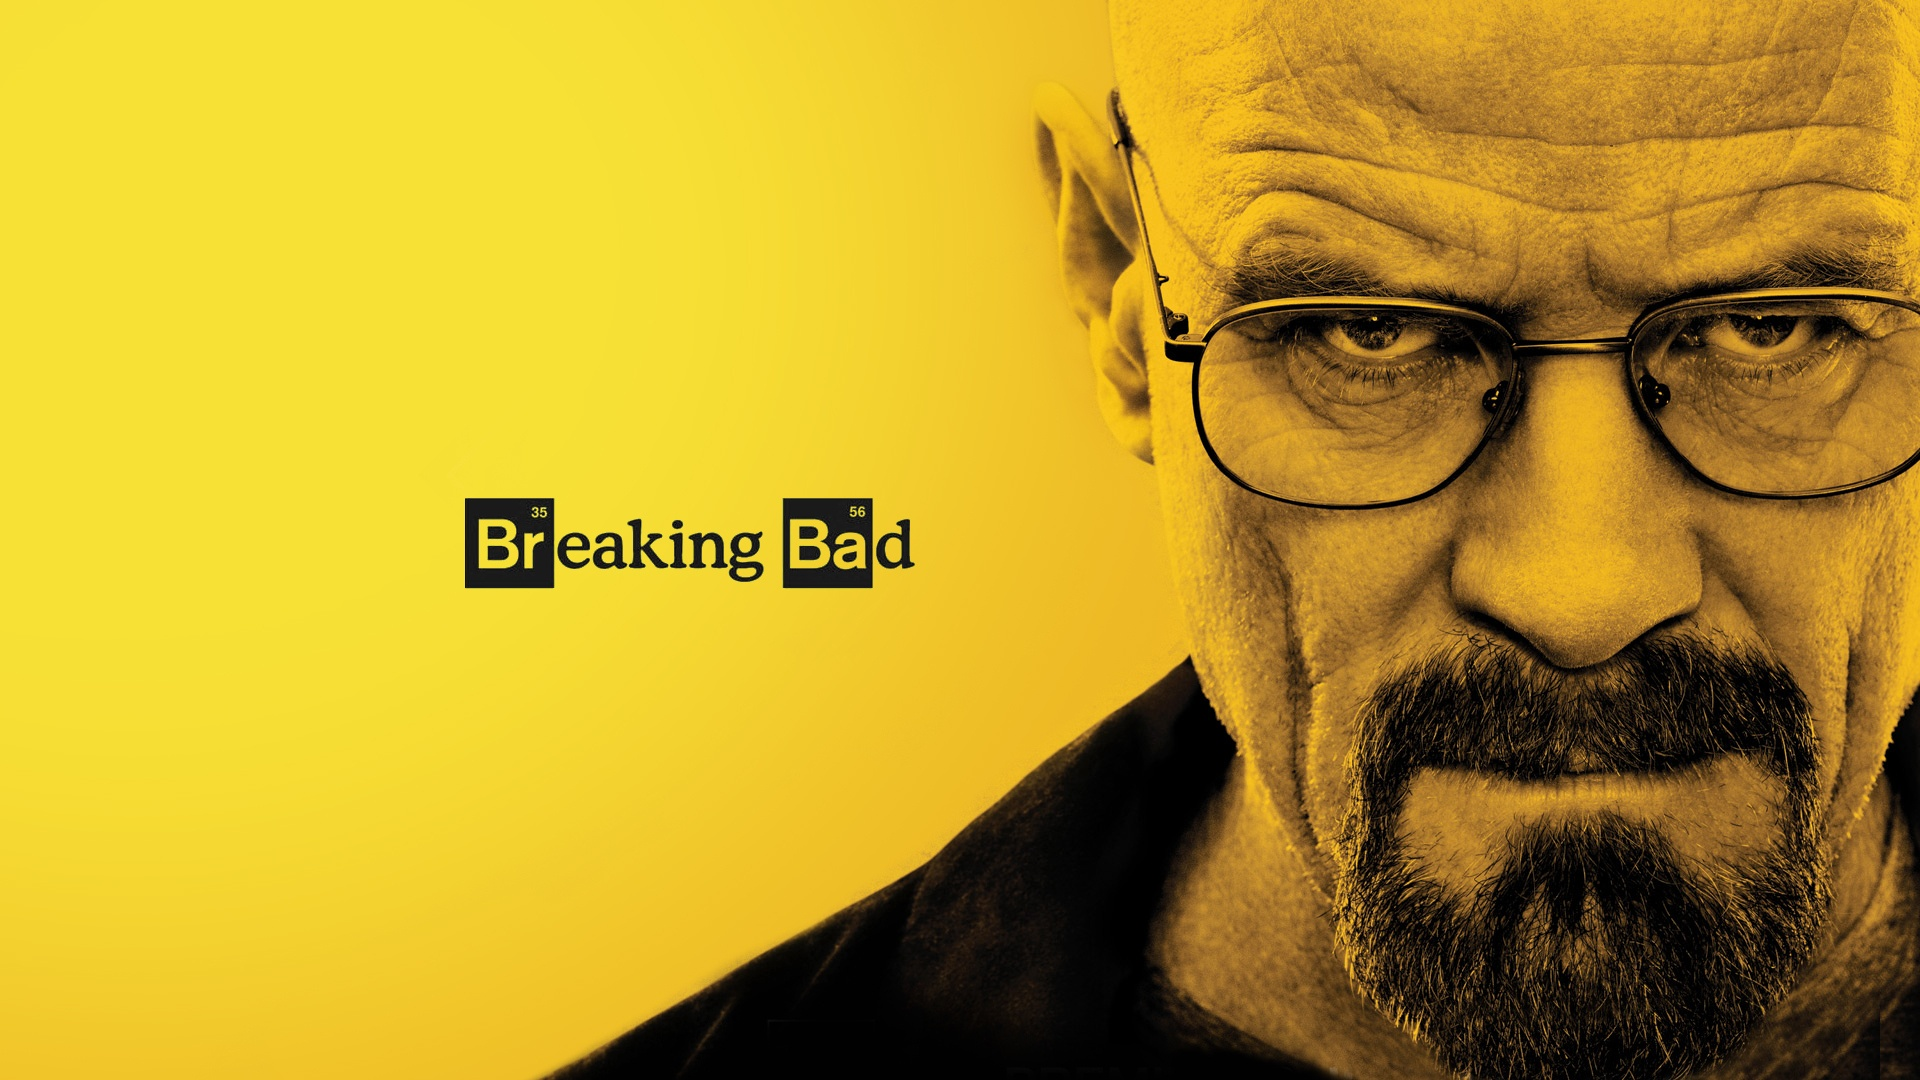 breaking-bad-wallpapers-hd-to-download-for-free_02